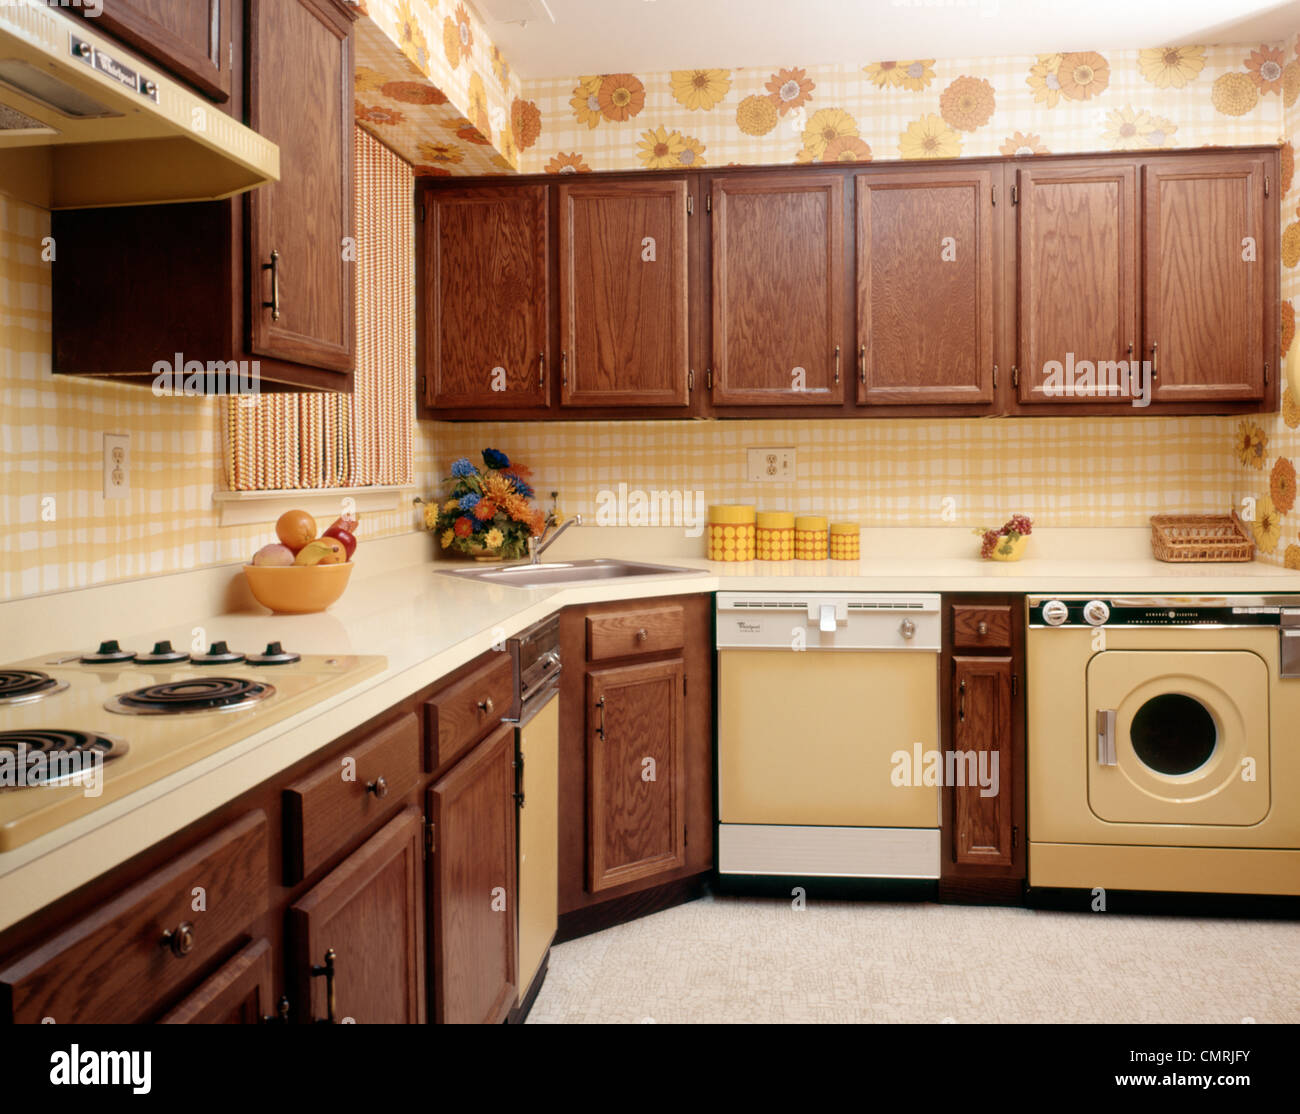 1970s KITCHEN INTERIOR WITH YELLOW APPLIANCES WOOD CABINETS AND SUNFLOWER  FLORAL PRINT WALLPAPER